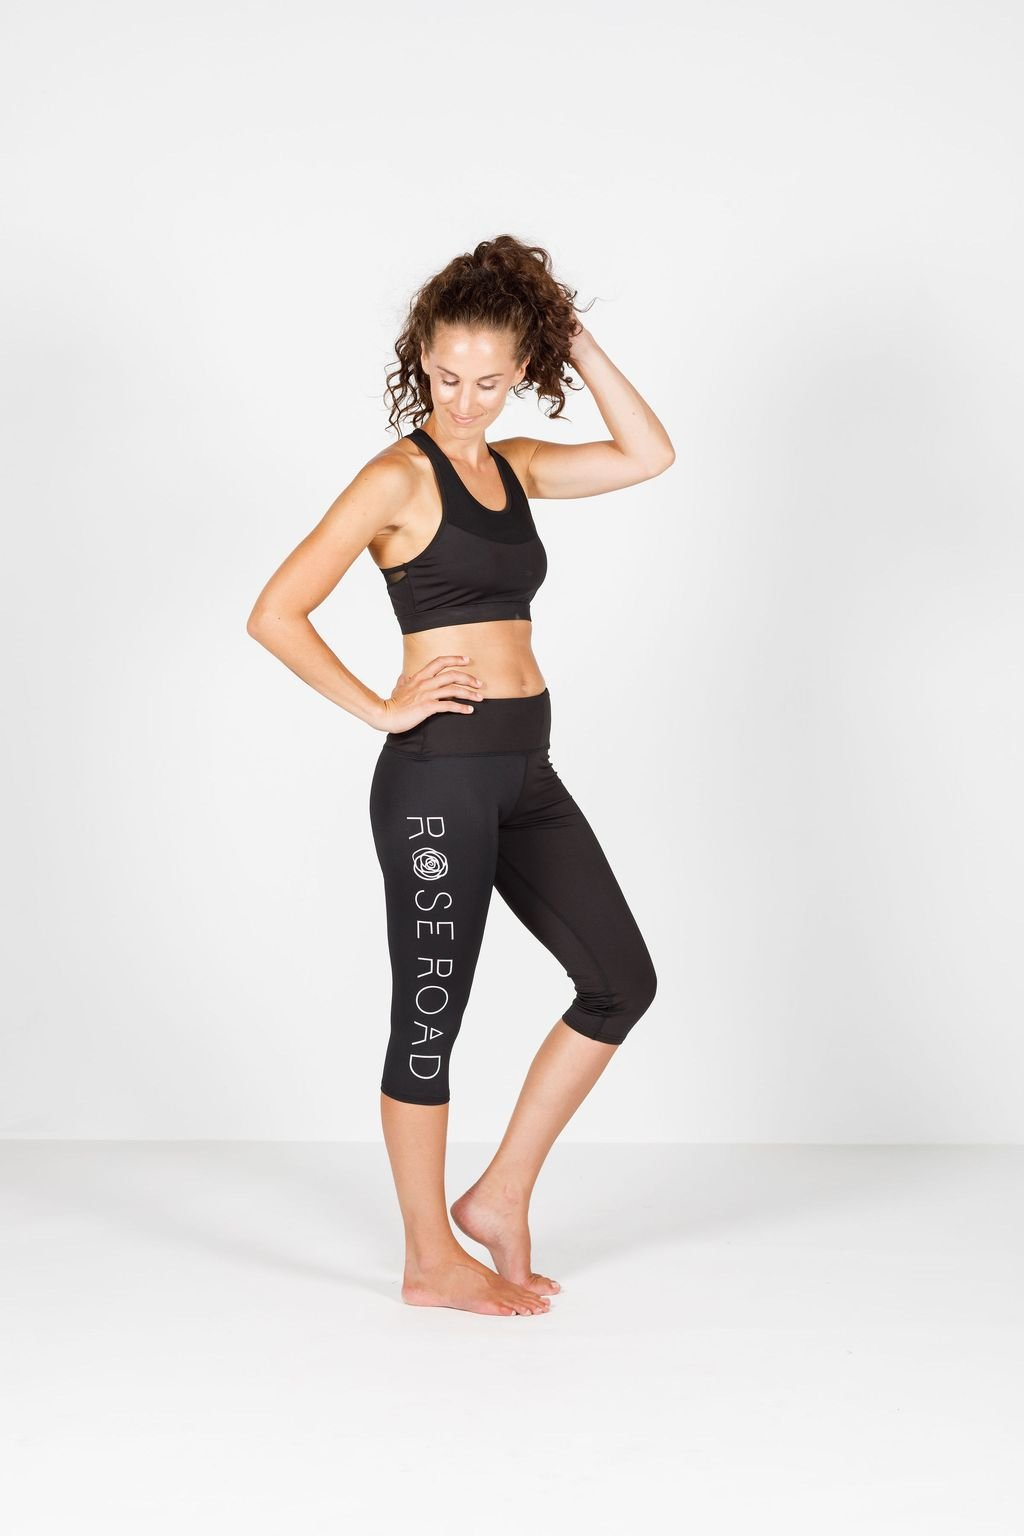 ROSE ROAD 3/4 LOGO LEGGING - No image set - Ebony Boutique NZ